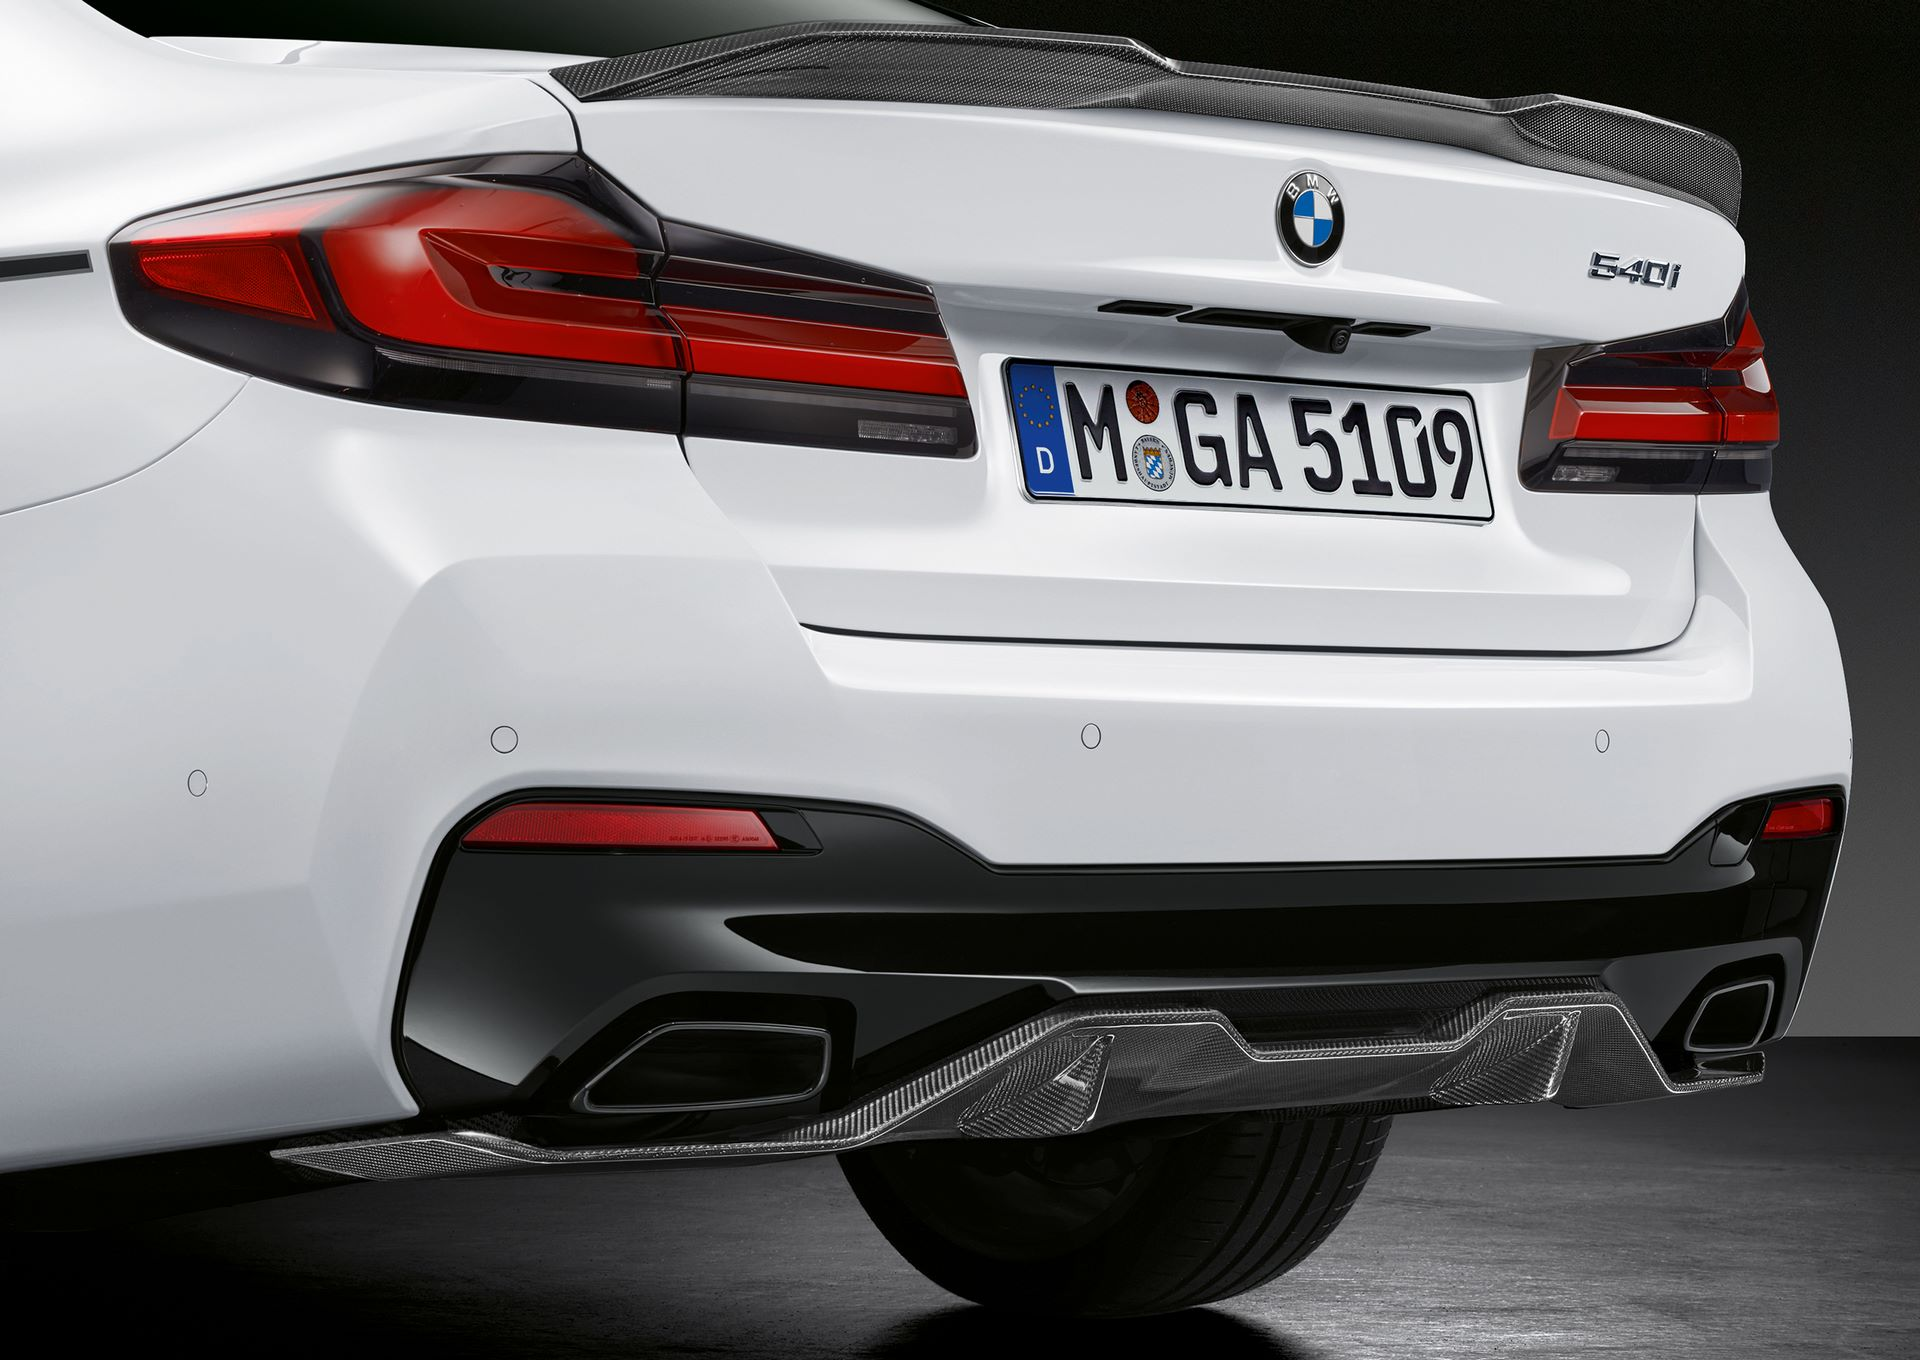 BMW-M-Performance-Parts-for-5-Series-M5-and-M5-Competition-5